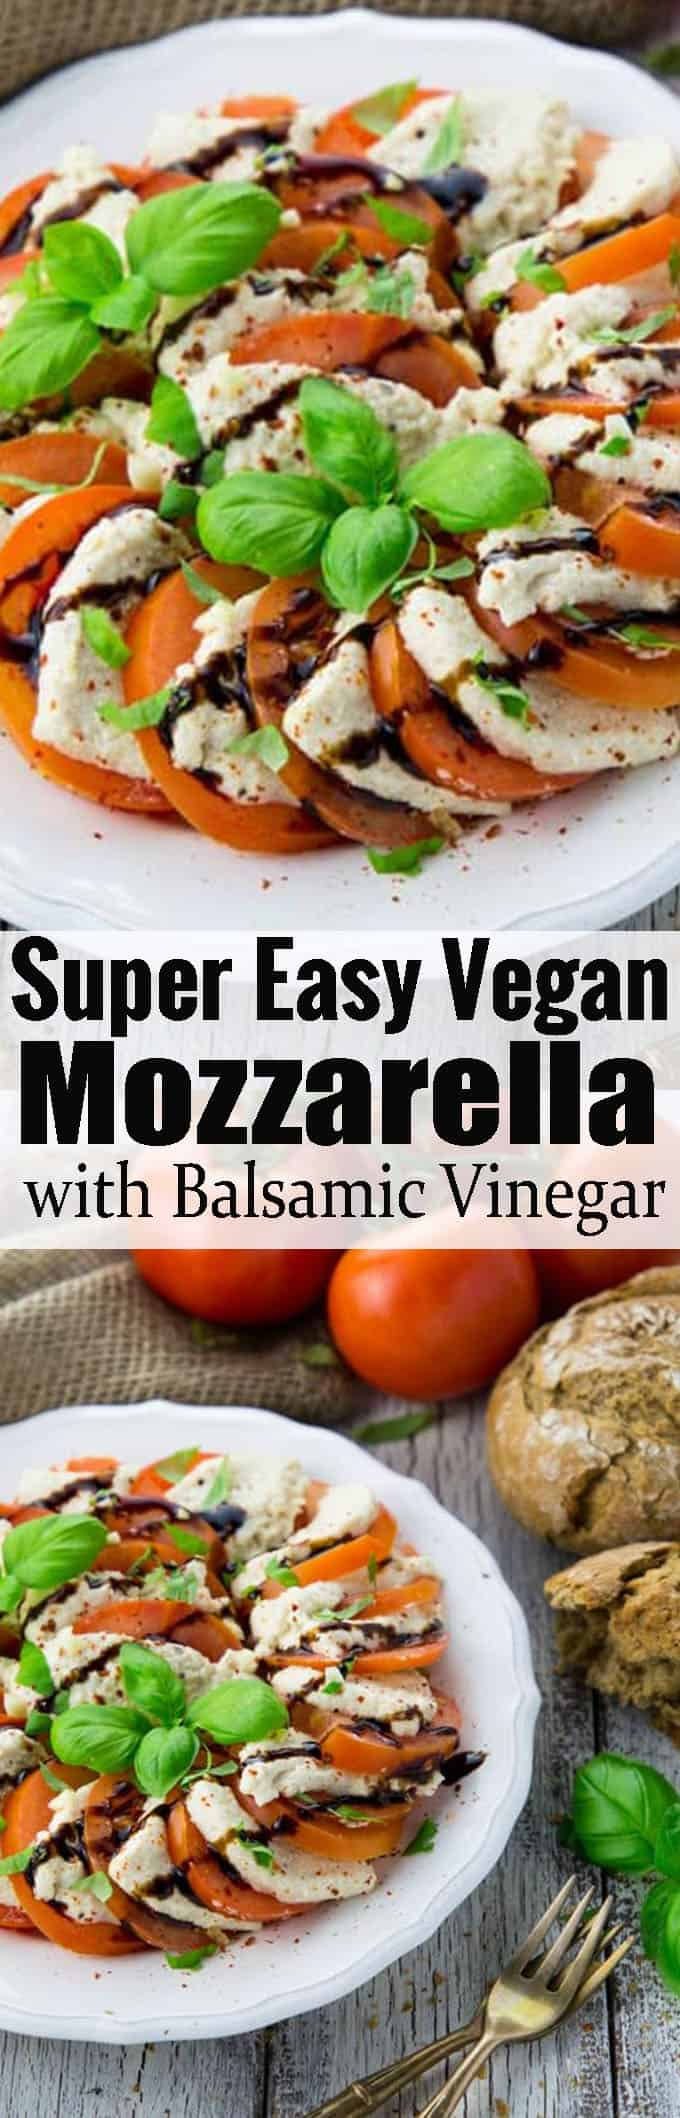 If you're looking for vegan cheese recipes, you'll love this homemade vegan mozzarella! It's best with tomatoes, balsamic vinegar, and basil! Find more vegan recipes at veganheaven.org